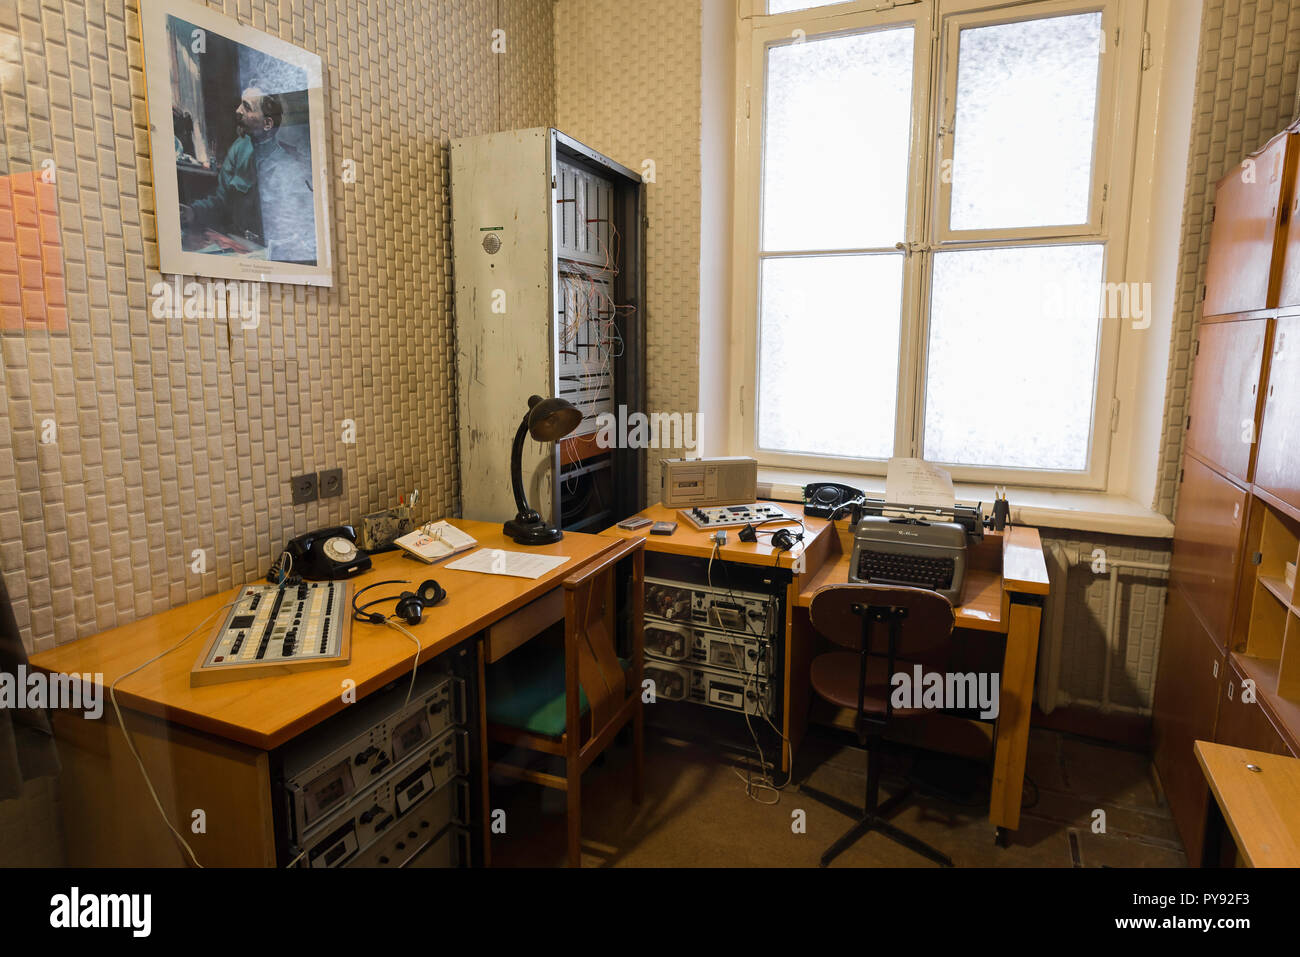 Vilnius Museum of Genocide Victims,view of a room in the museum displaying typical surveillance equipment used by the Soviet authorities in Lithuania. - Stock Image